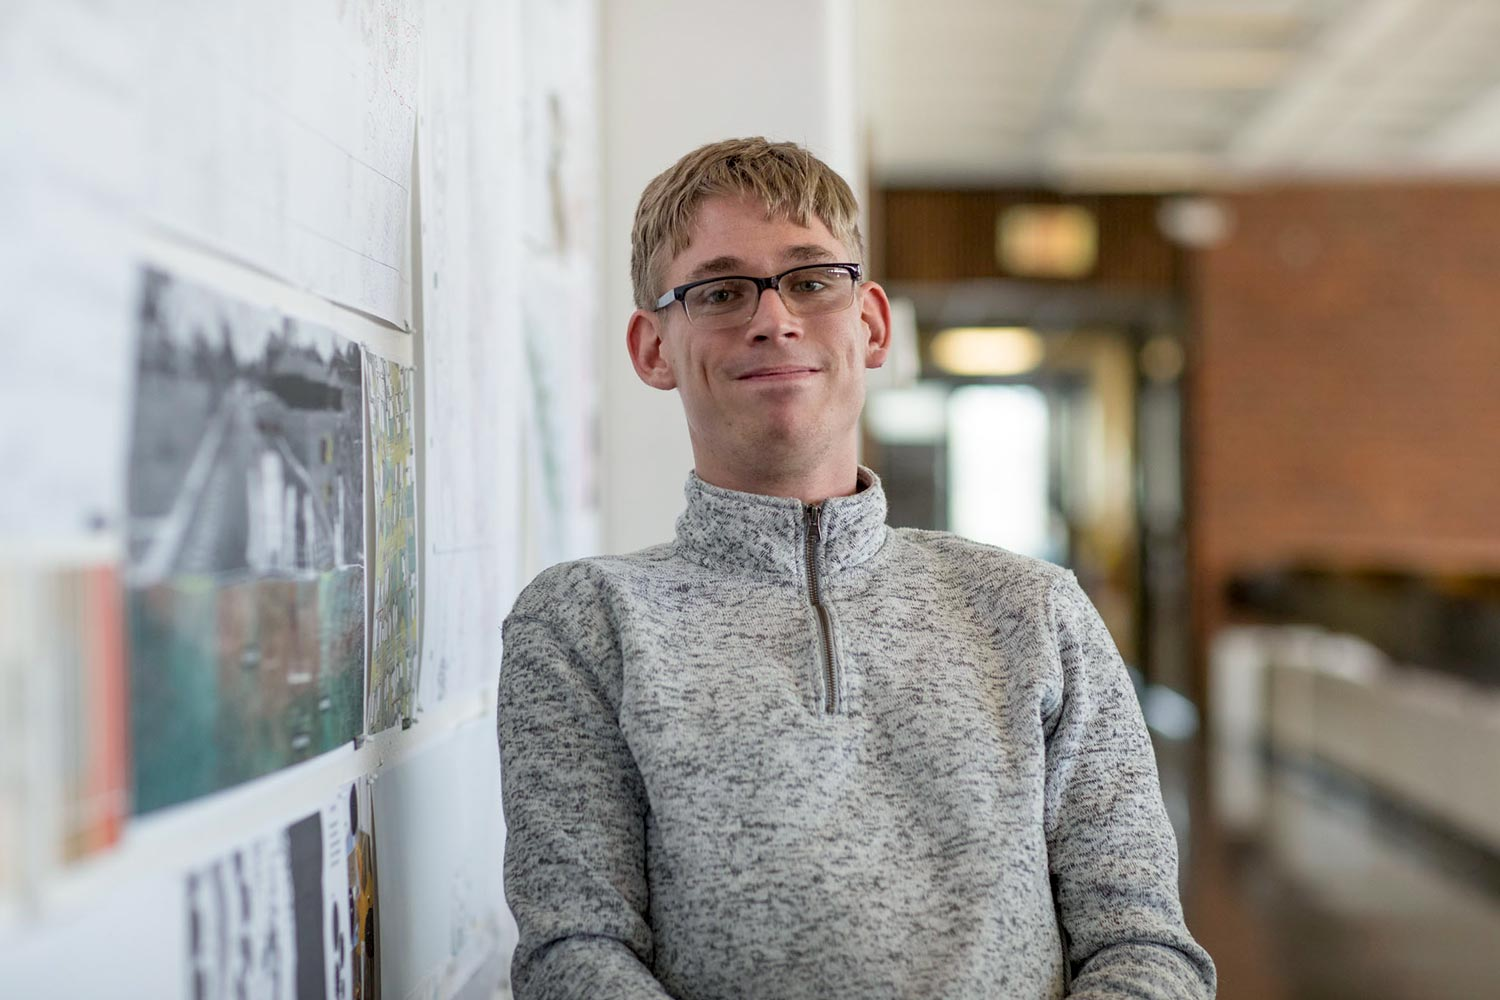 Cory Paradis earned his architecture degree last year, devoting much of his studies to issues surrounding the Americans With Disabilities Act and concerns around accessibility.